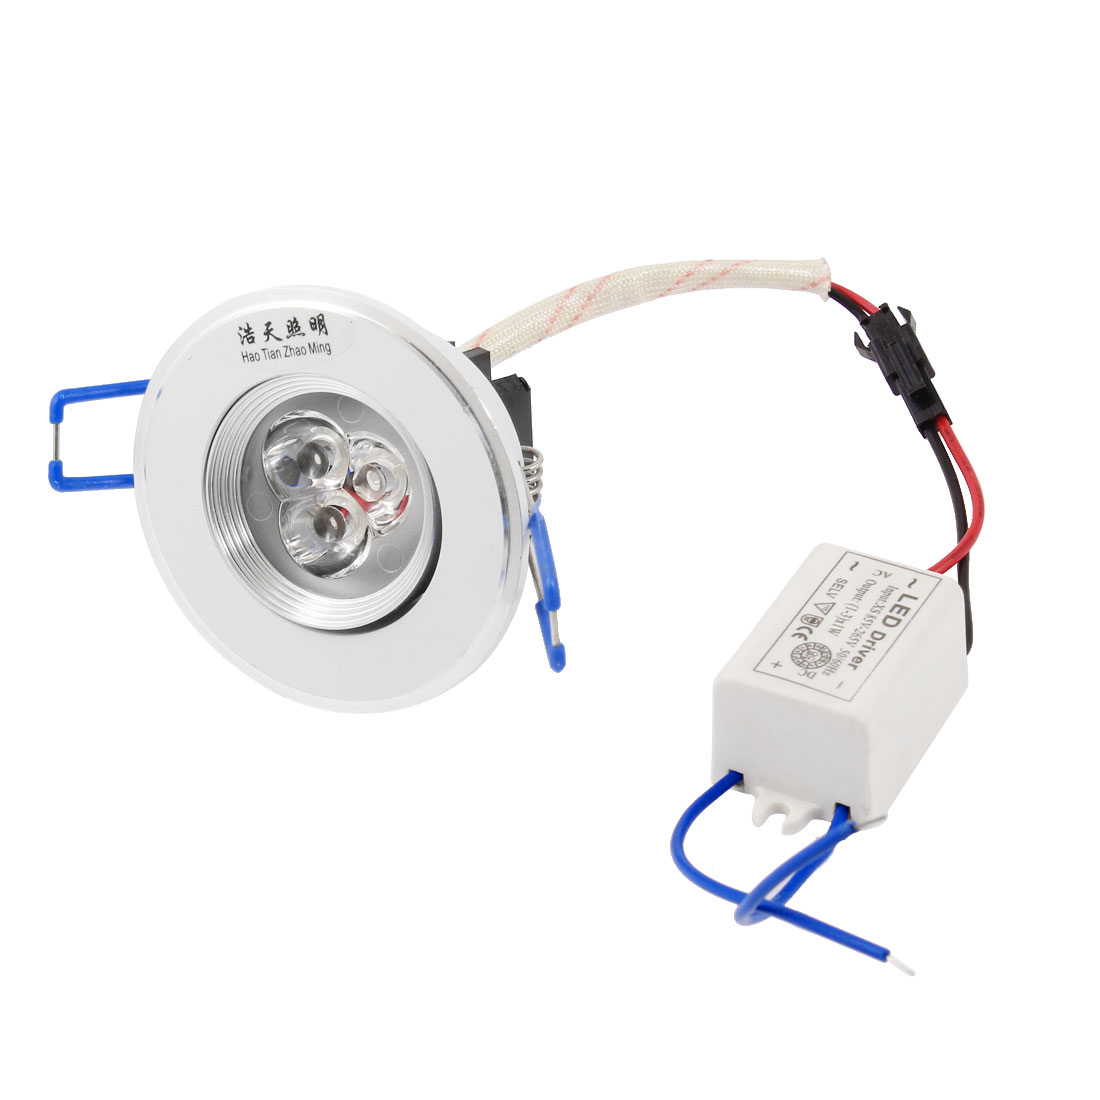 100-110LM 3W Warm White Ceiling Downlight Recessed Spot Lamp Bulb + LED Driver